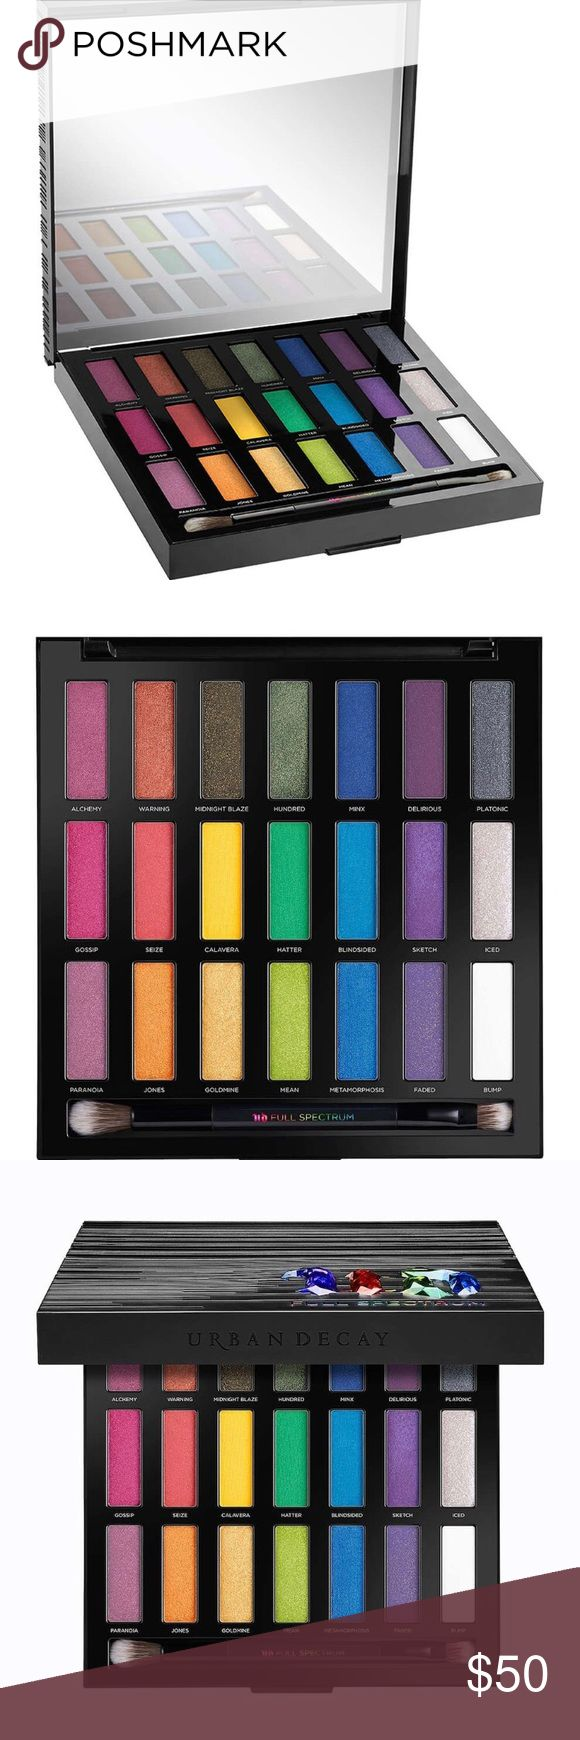 NIB Urban Decay Eyeshadow Pallet Full Spectrum Urban Decay 21 Color Eyeshadow Pallet   When color is your drug of choice, you know where to get the good stuff. Satisfy your color addiction with this Urban Decay Pallet. With 18 new shades and 3 exclusives from past pallets and wide range of finishes you'll never run out of options. Urban Decay Makeup Eyeshadow